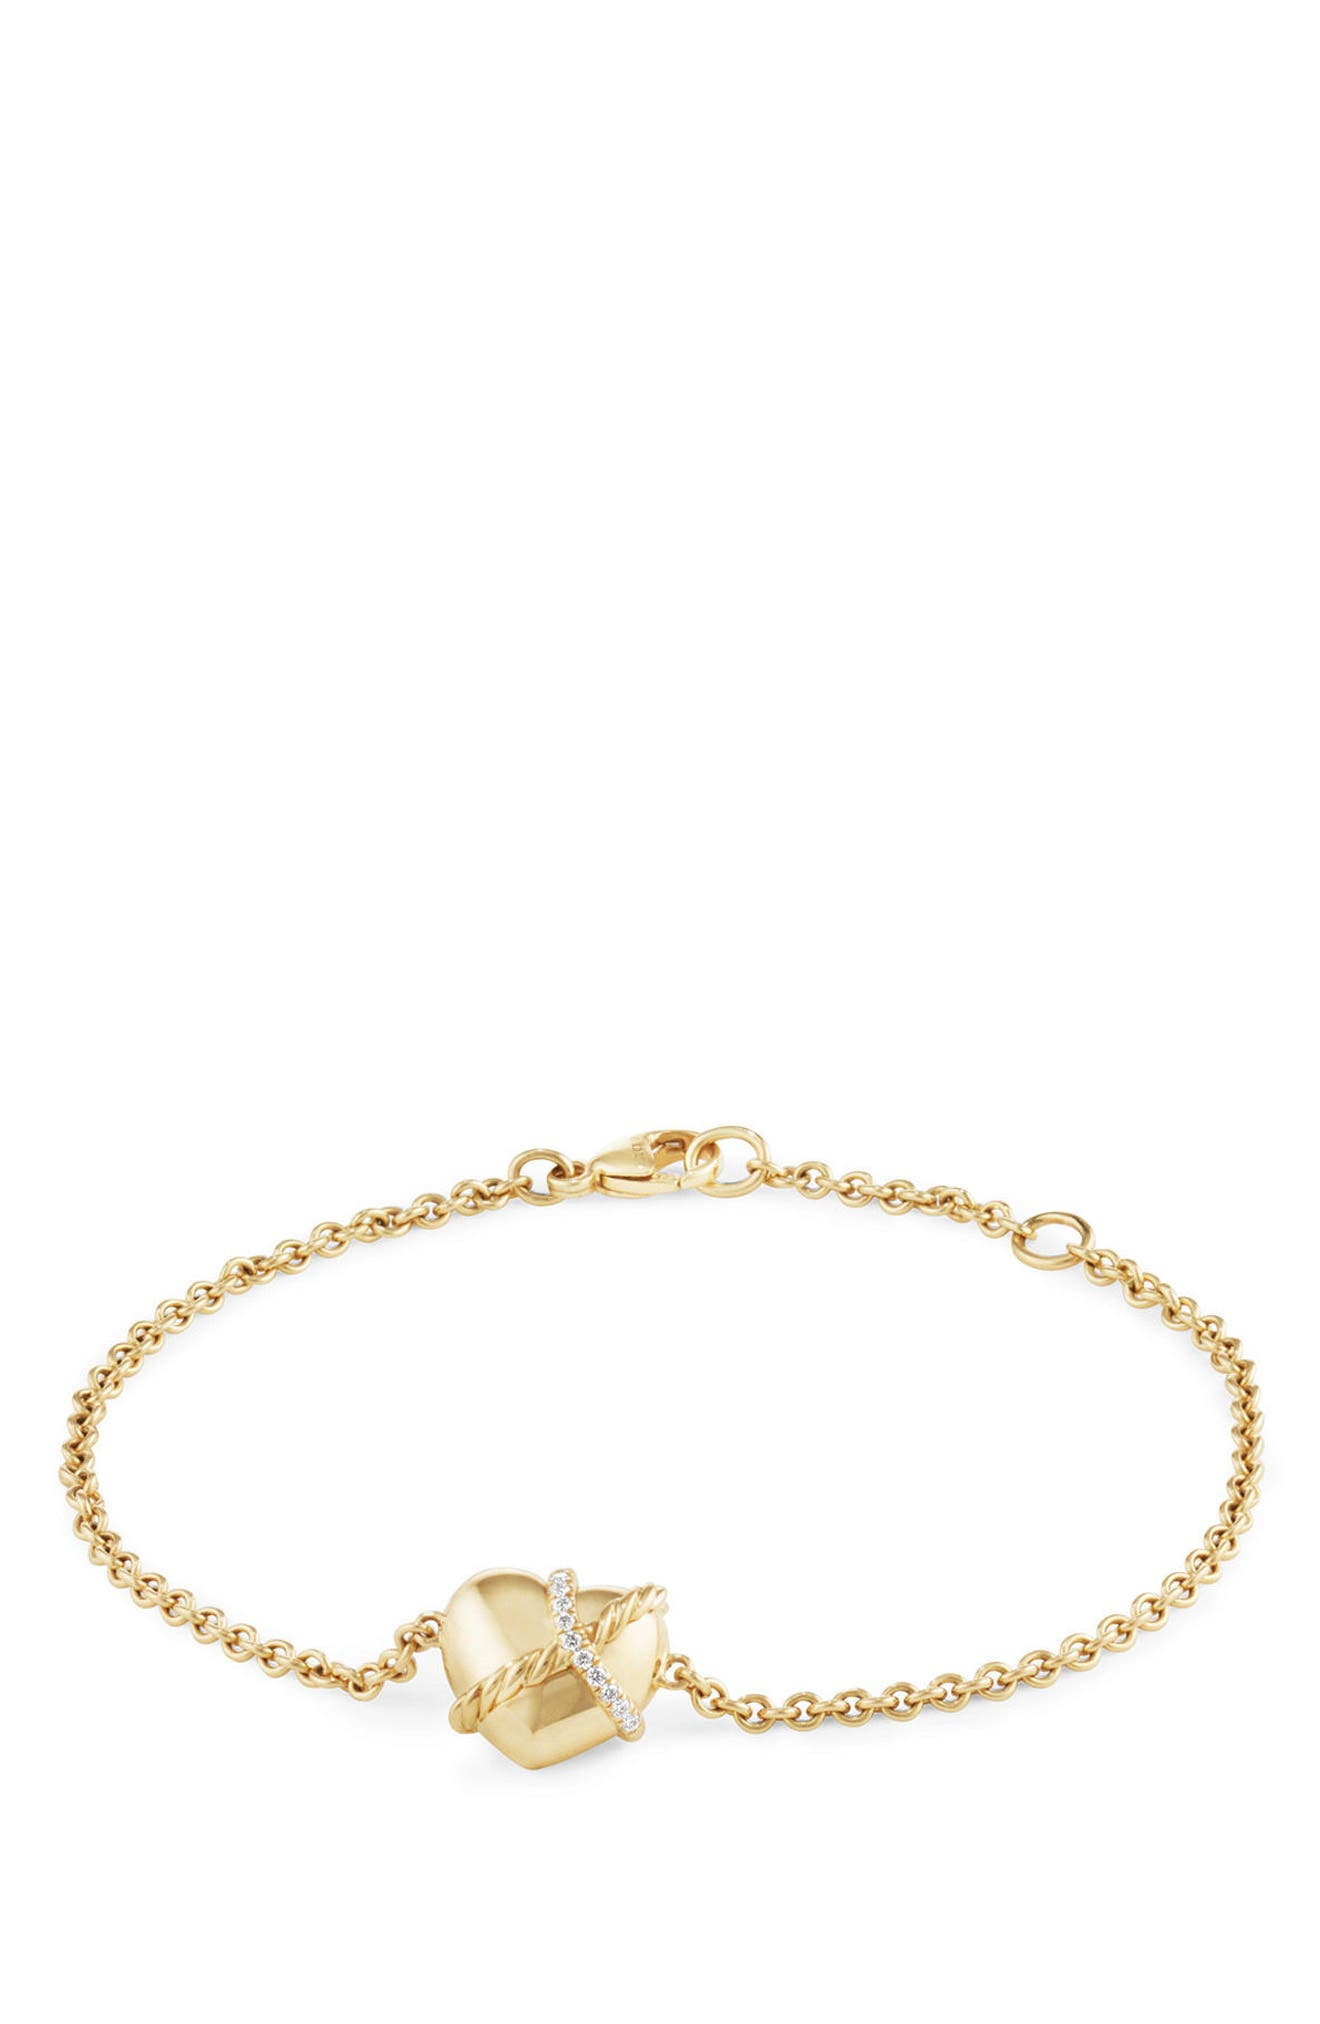 Heart Bracelet in 18K Gold with Diamonds,                             Main thumbnail 1, color,                             YELLOW GOLD/ DIAMOND